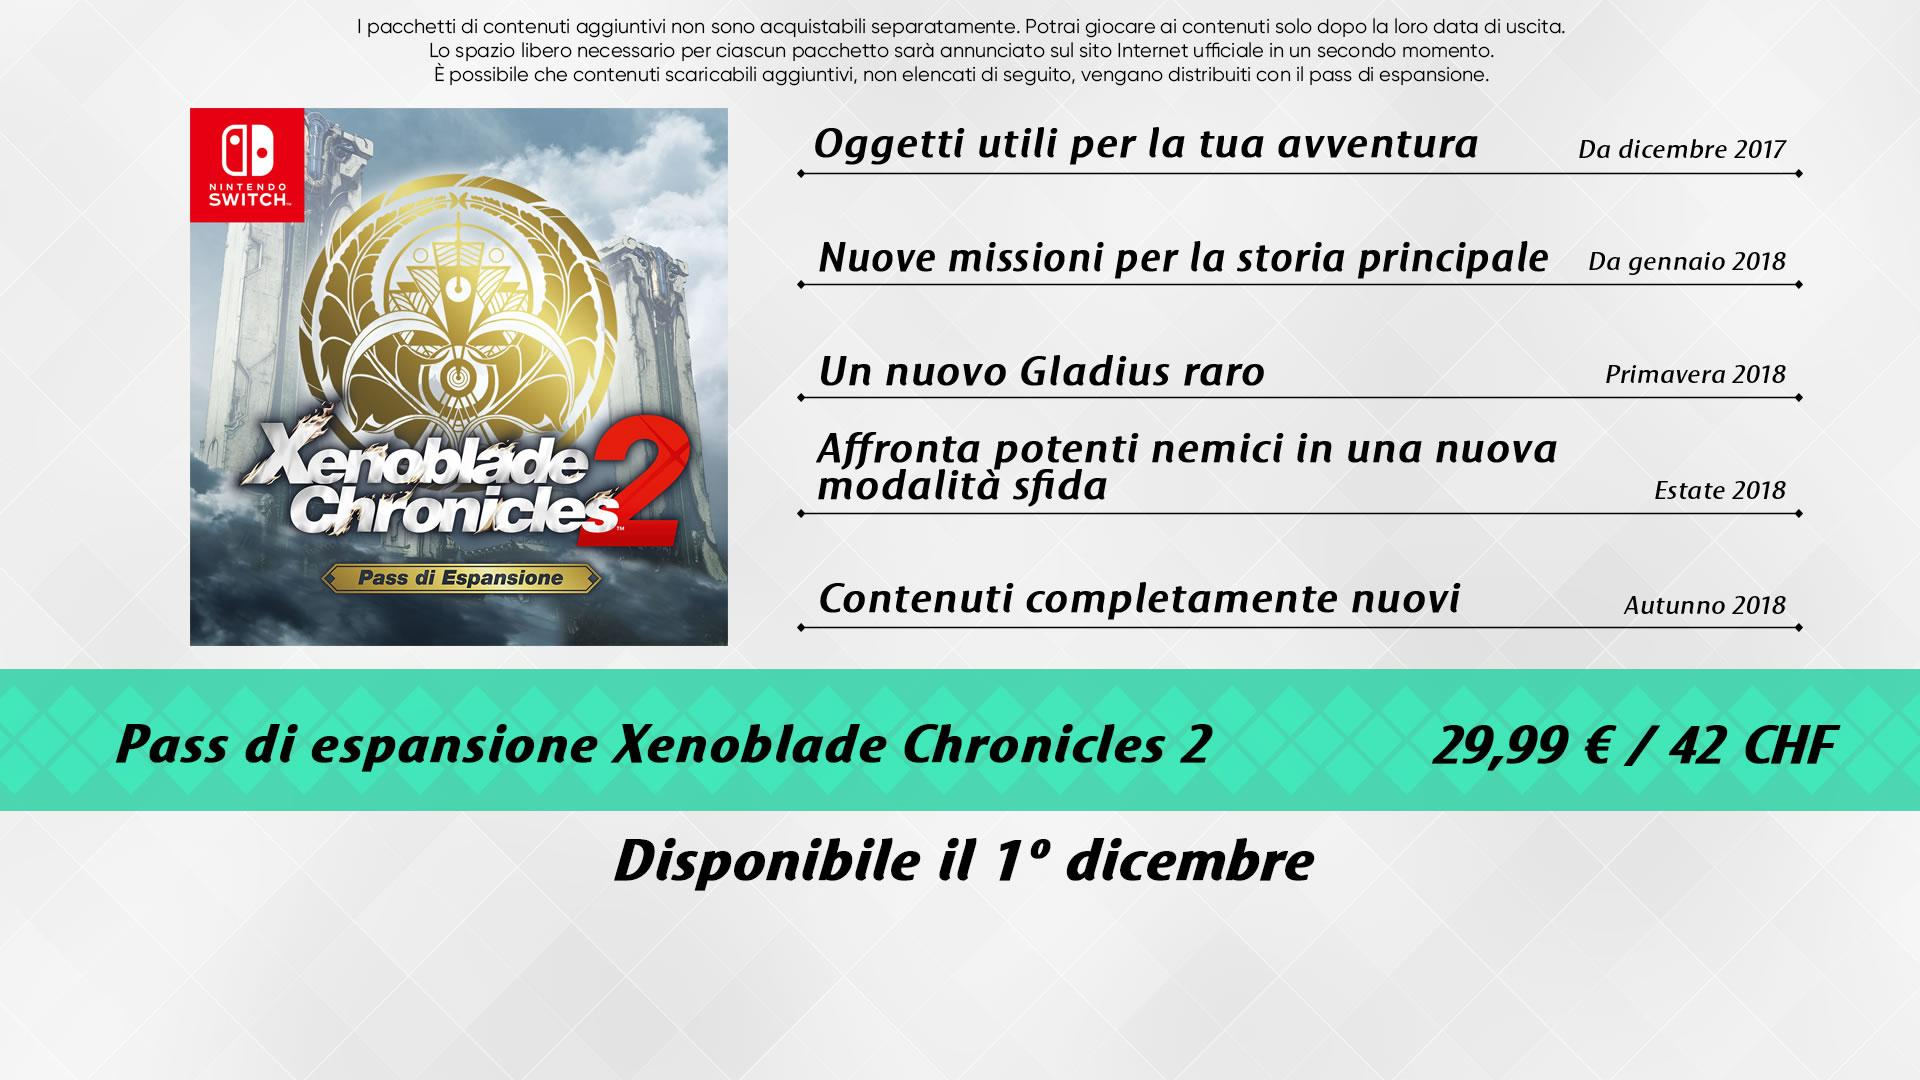 Xenoblade Chronicles 2 - Expansion Pass